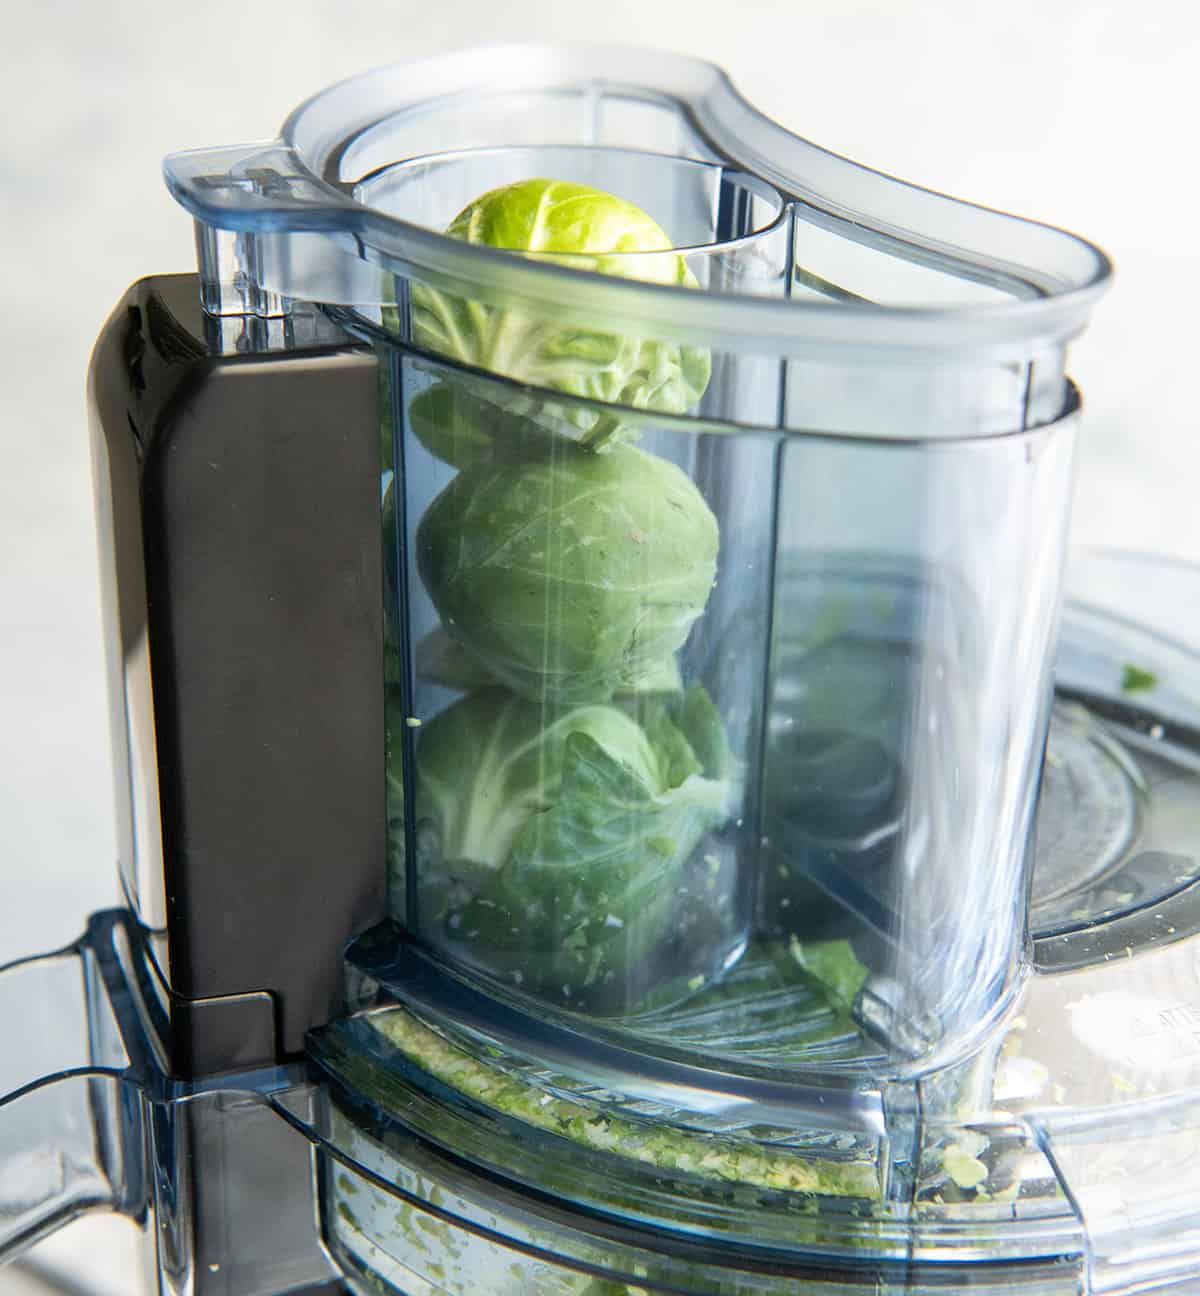 Brussels sprouts in the small food chute of a Vitamix food processor